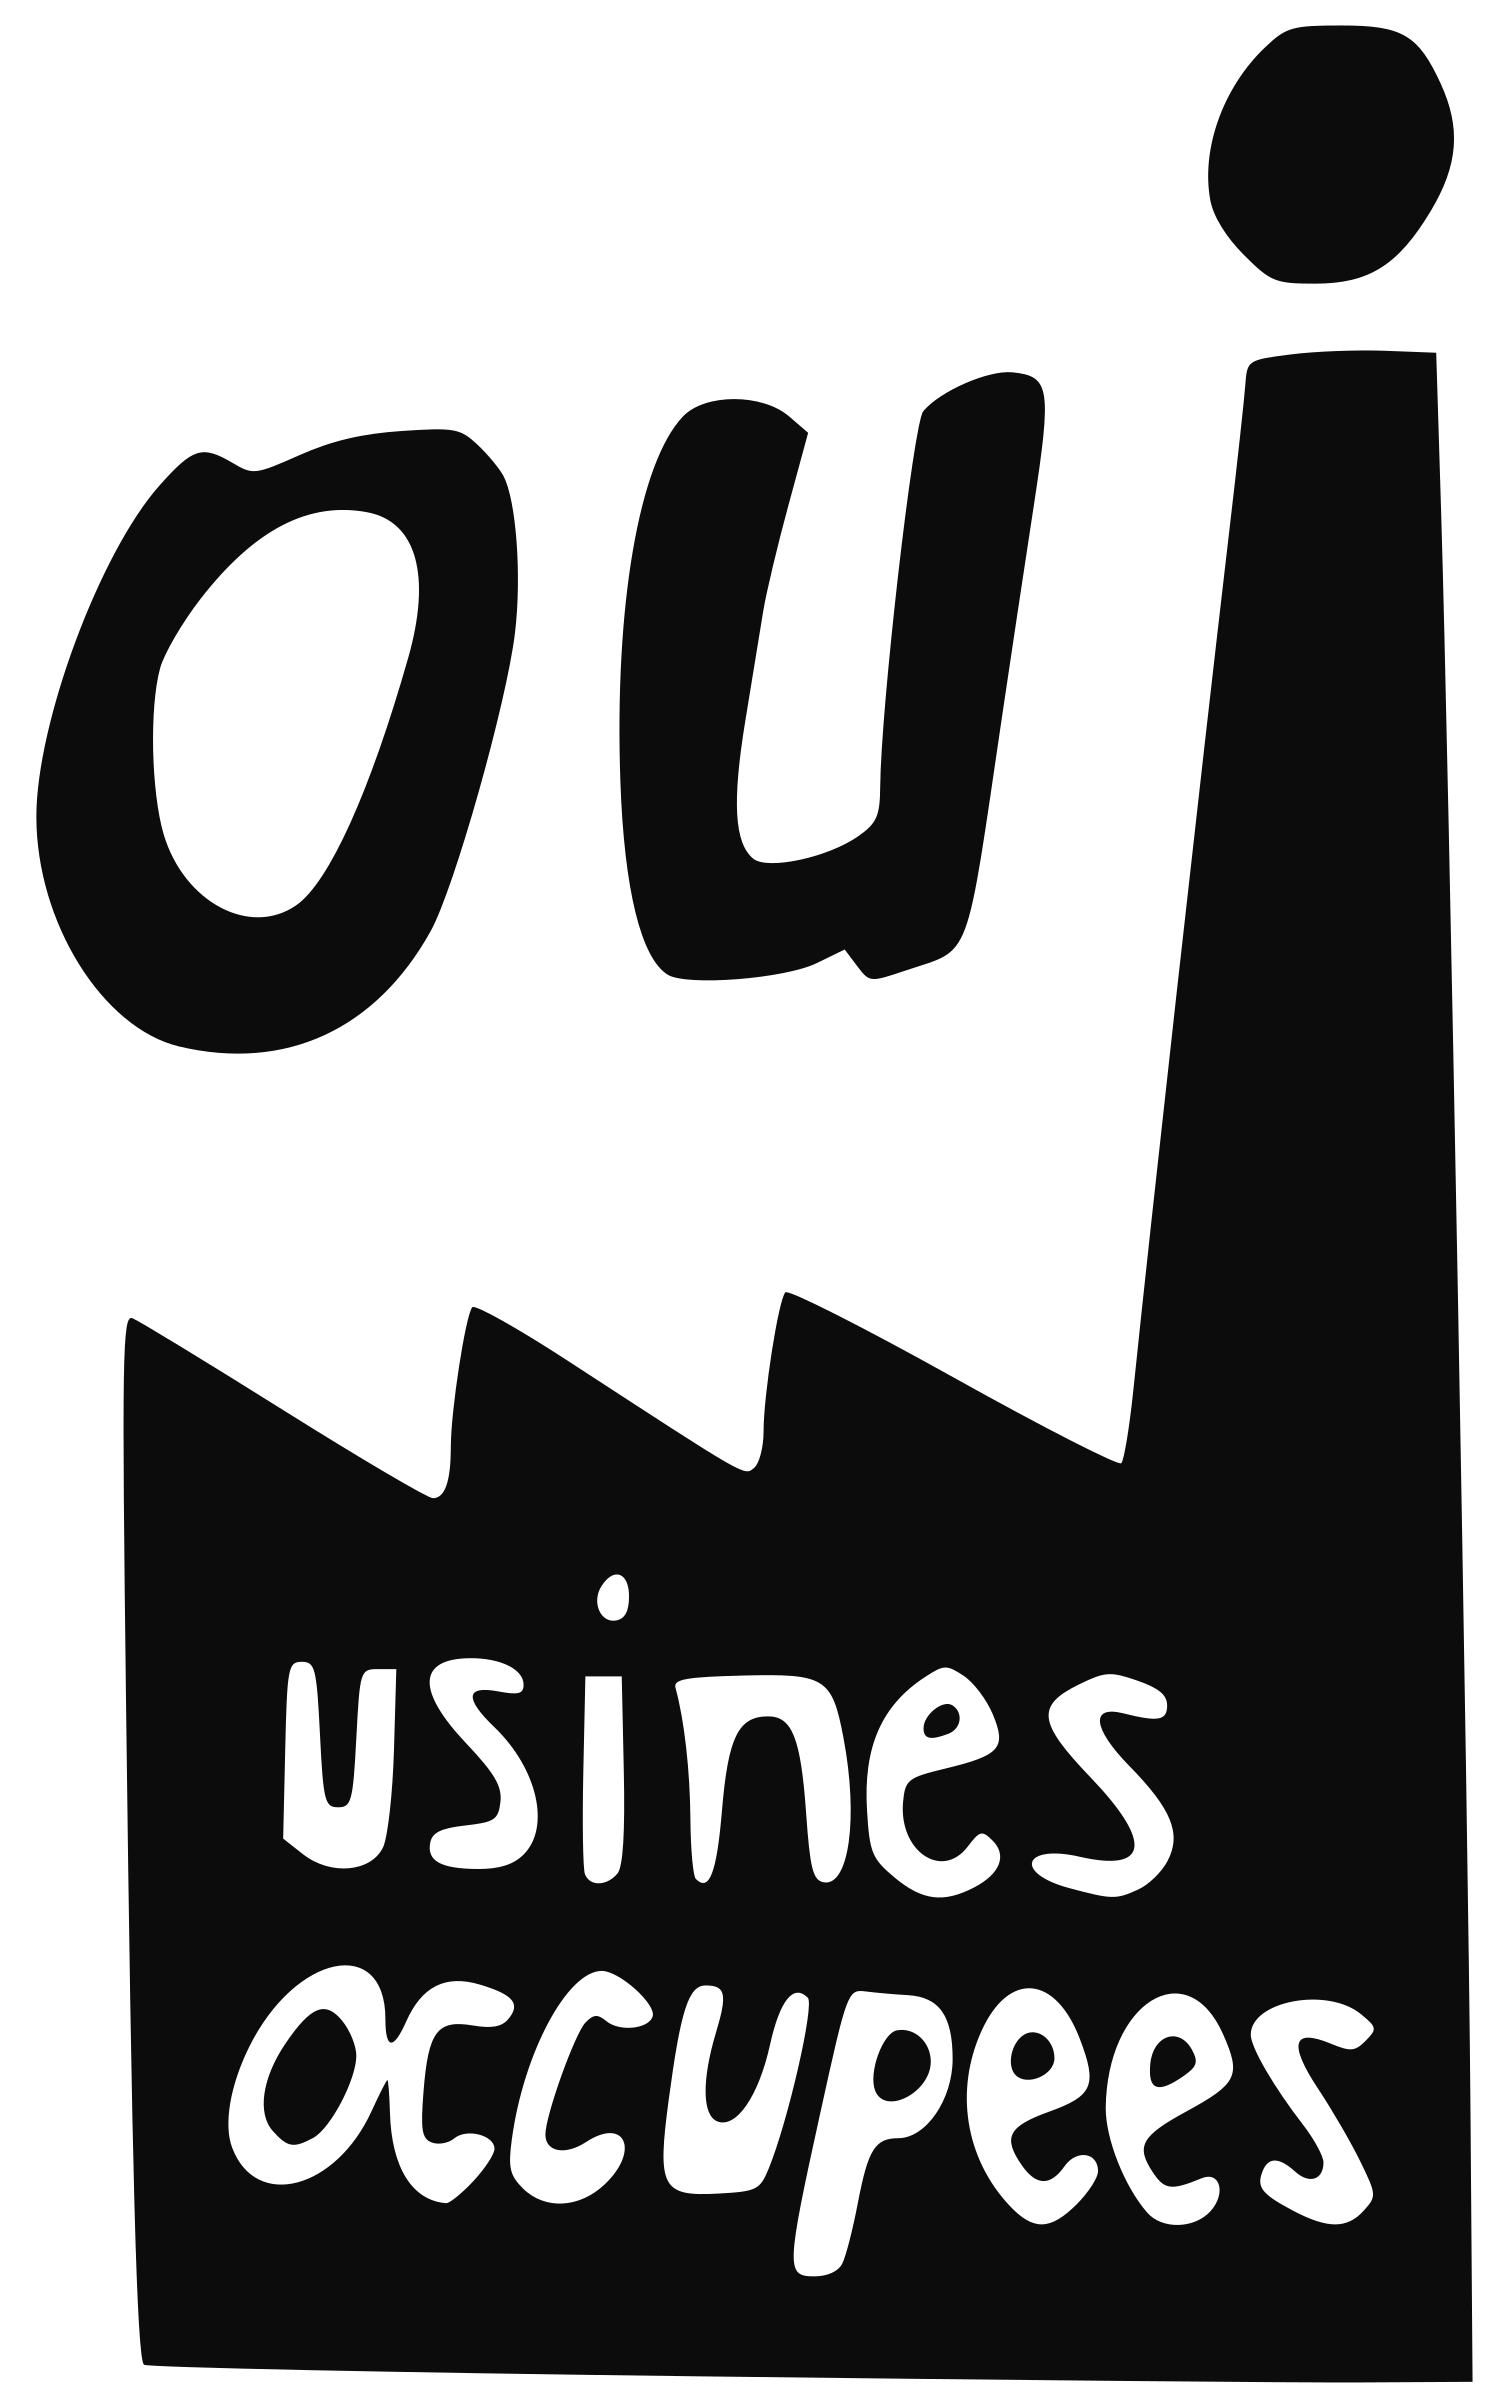 Usines occupées by ben